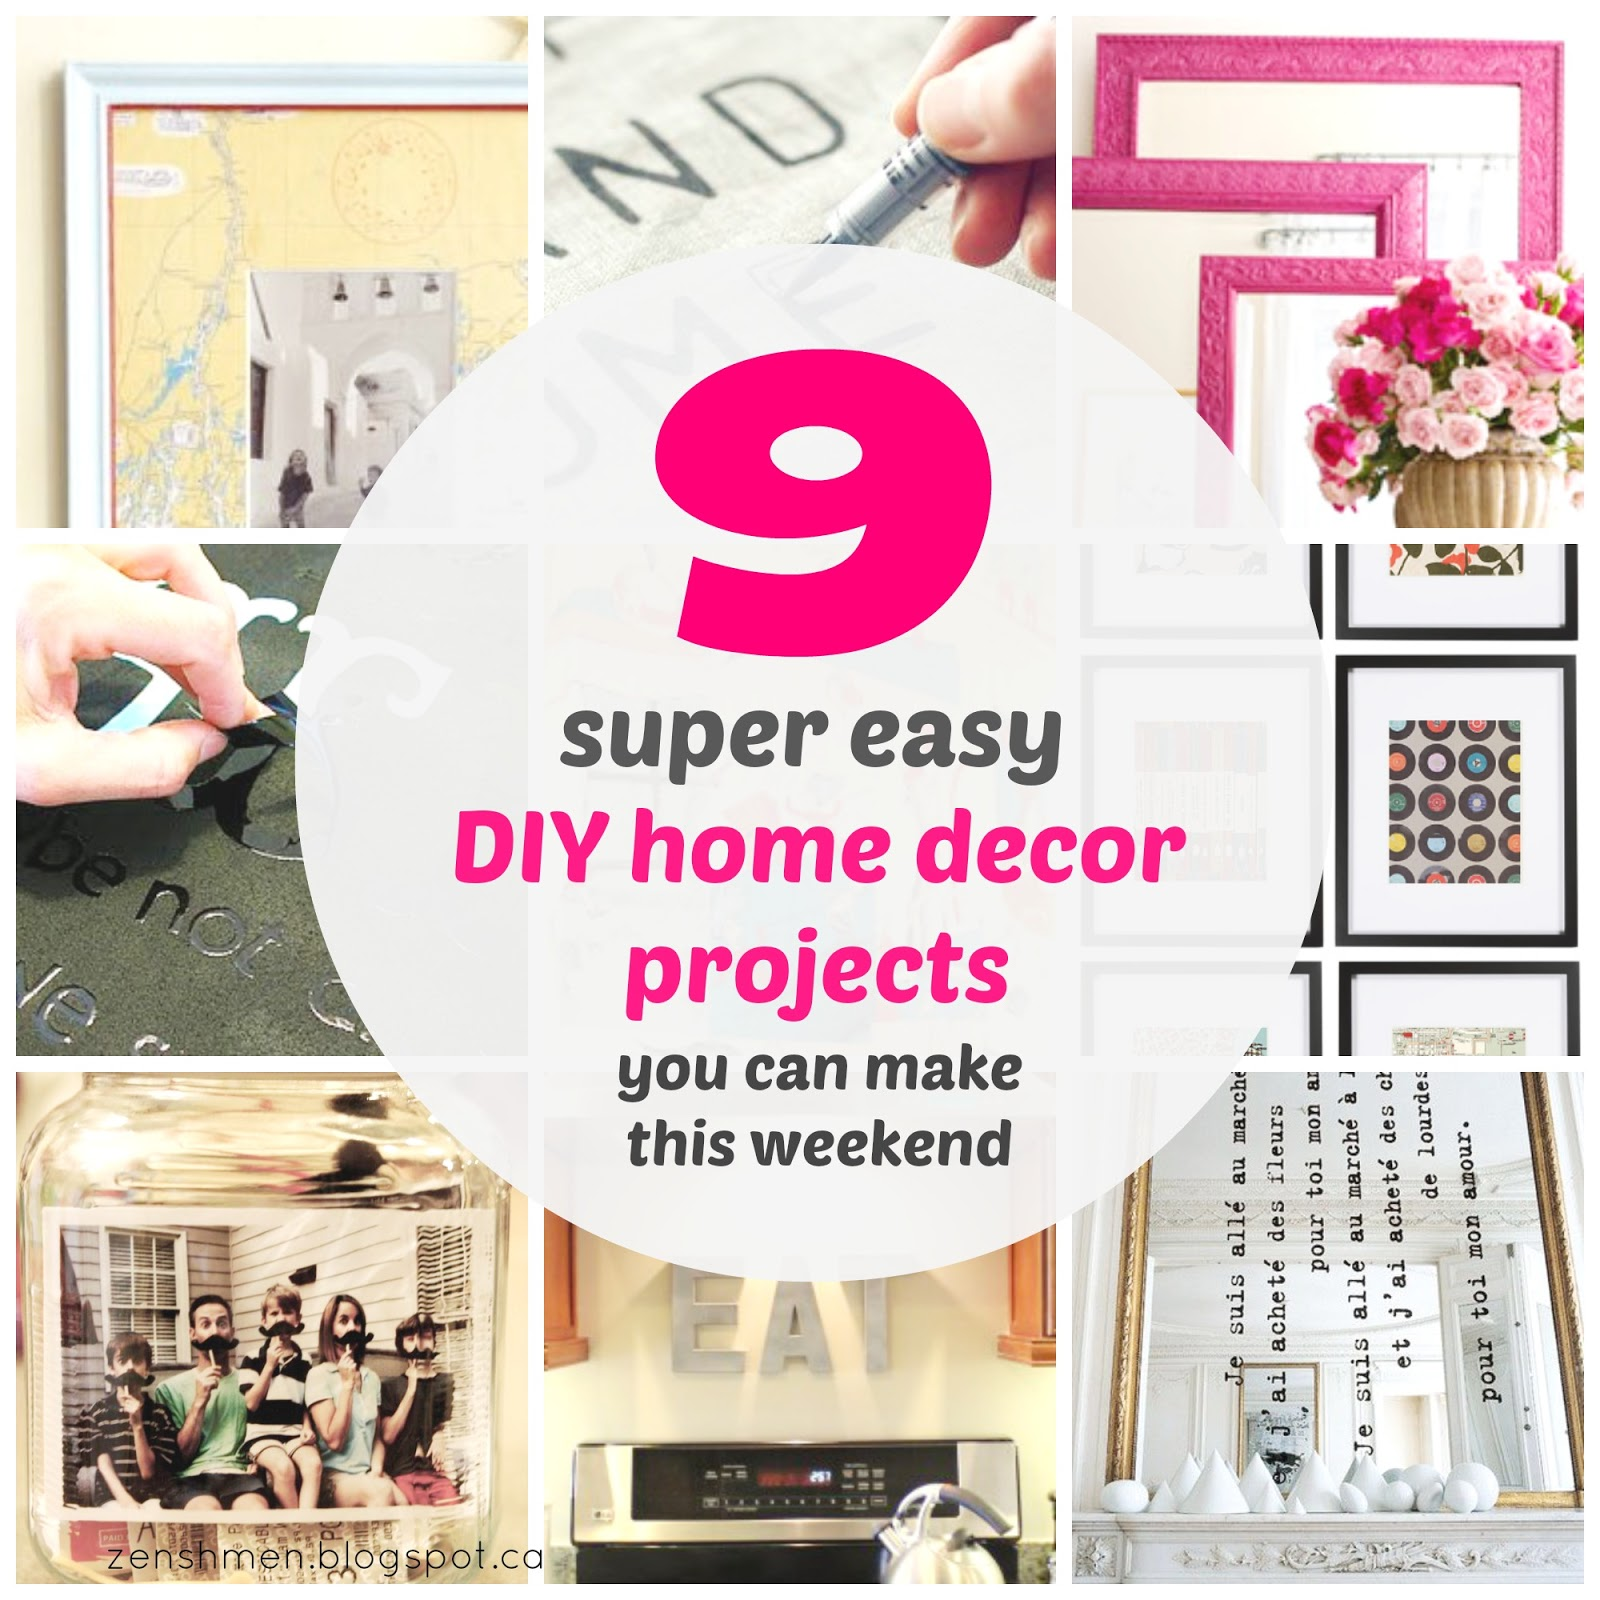 Zen shmen 9 super easy diy home decor projects you can for How to make home decorations